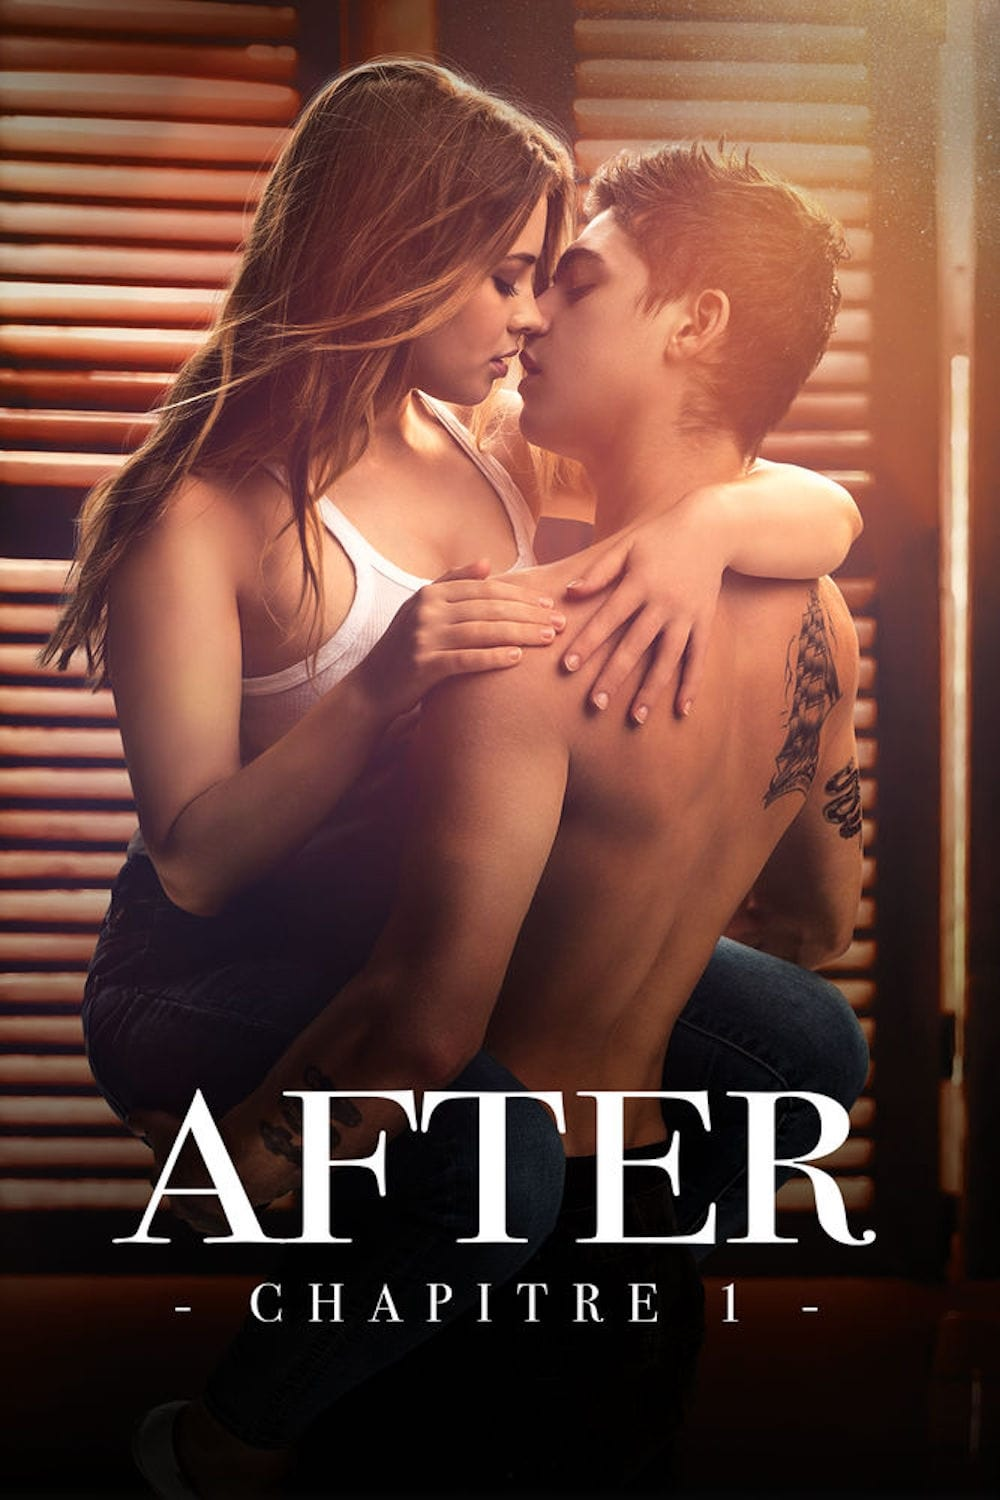 After Chapitre 1 Streaming : after, chapitre, streaming, Regarder, After, Chapitre, (2019), Complet, Streaming, StreamingVfFR